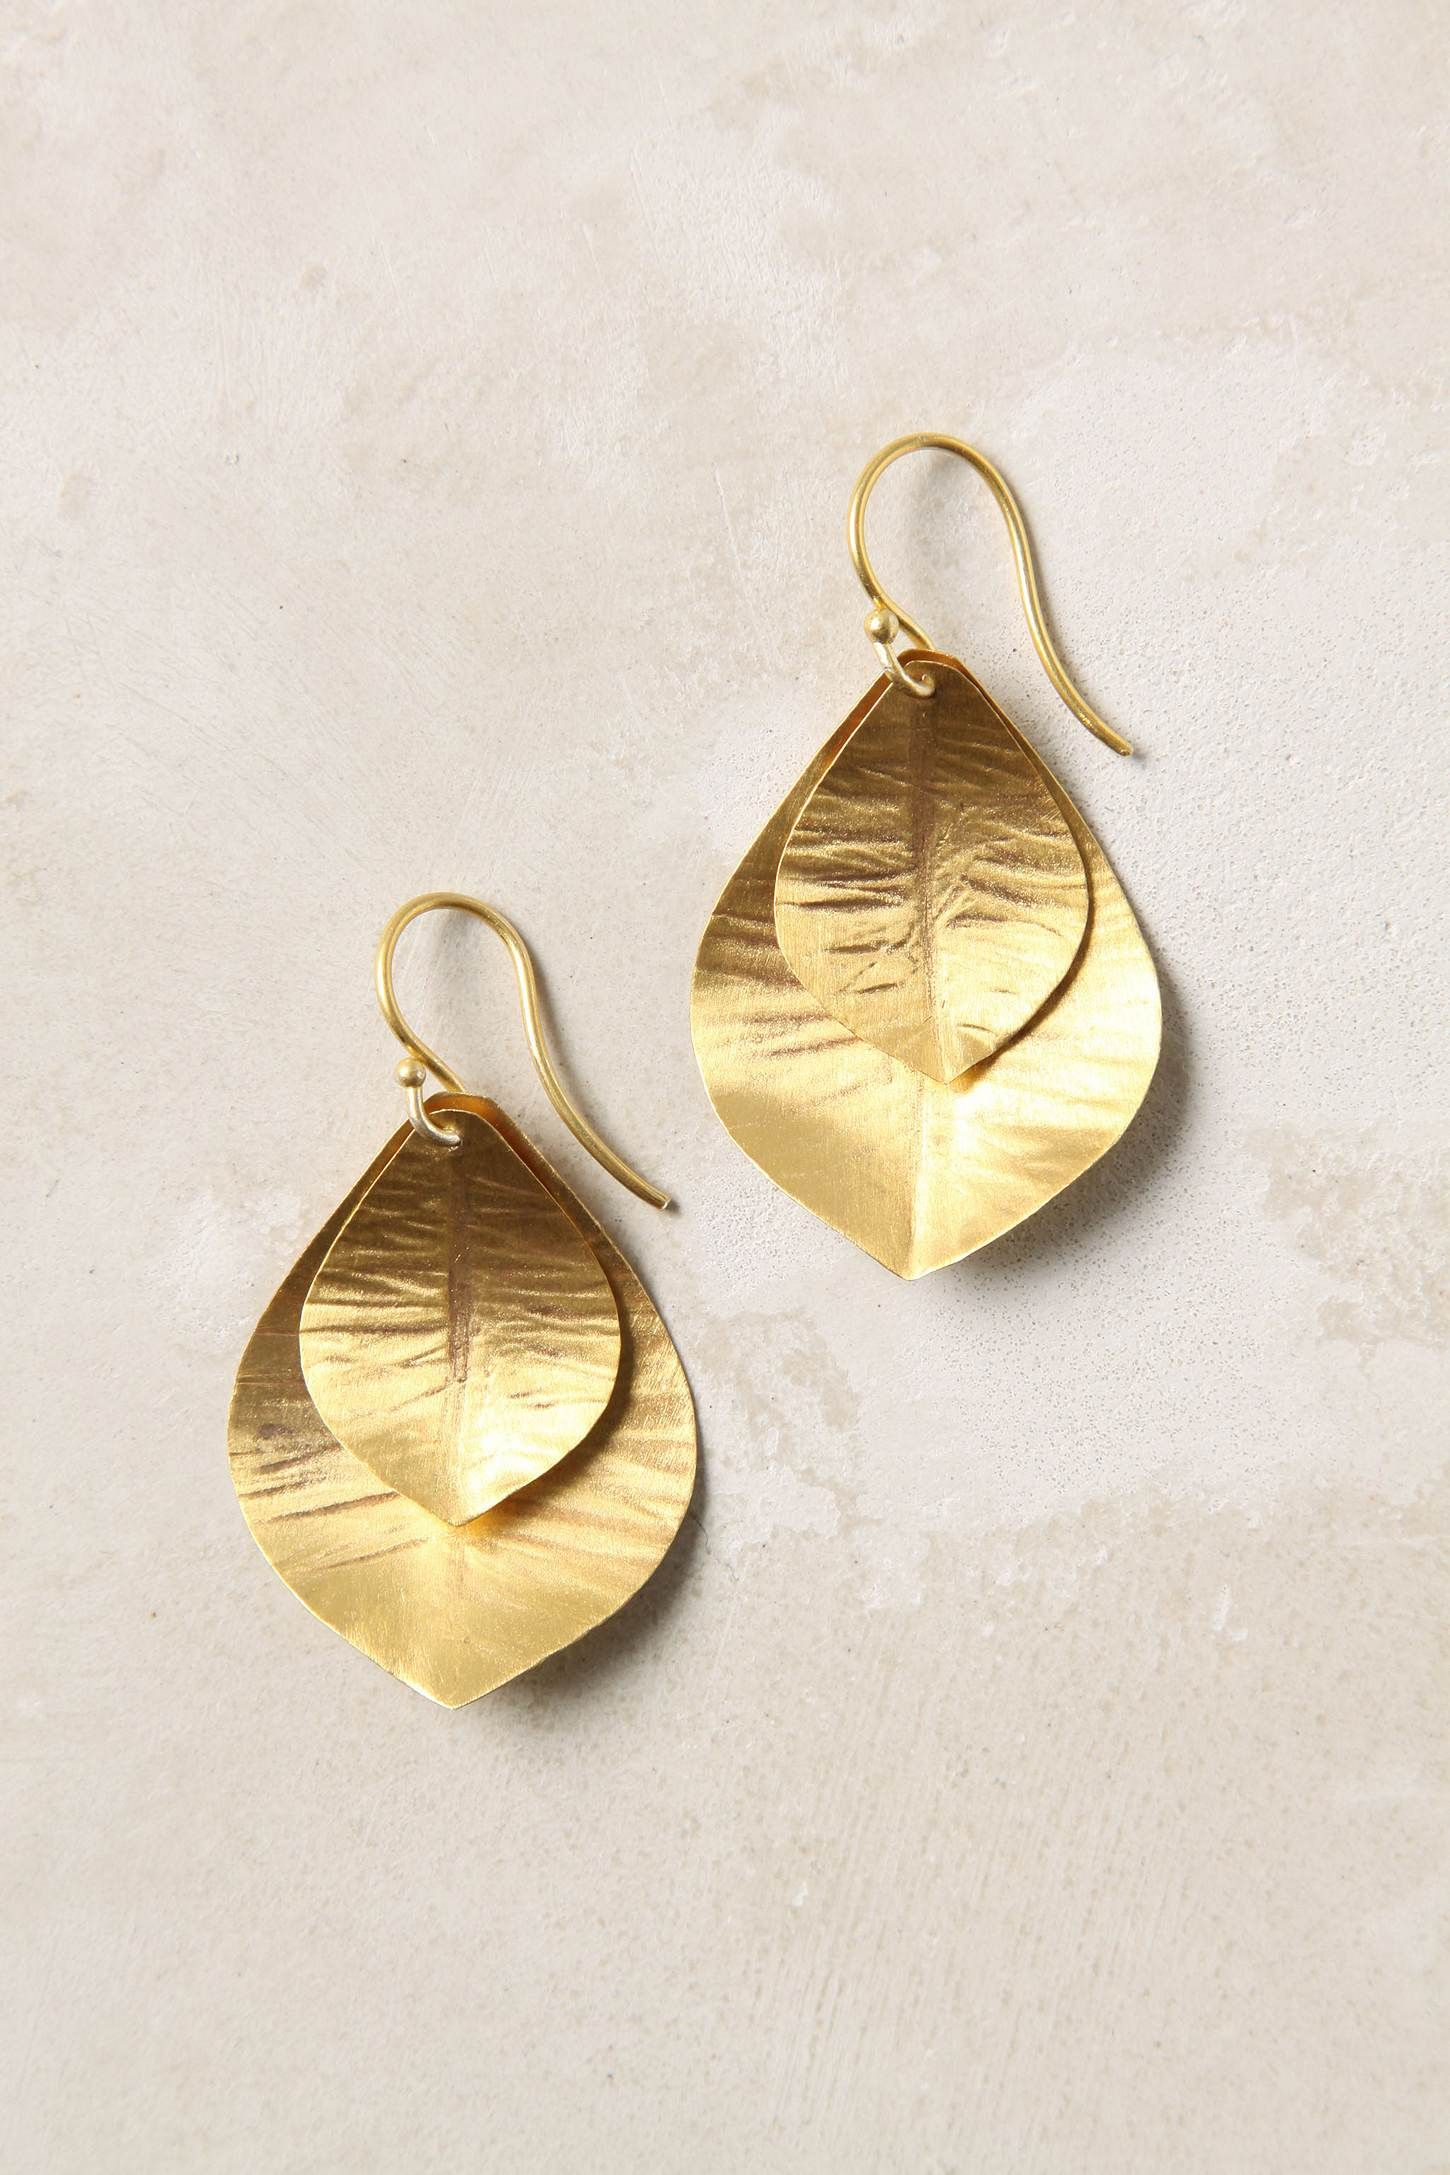 Gold leaf earrings theyure beautiful but i think the clinking would